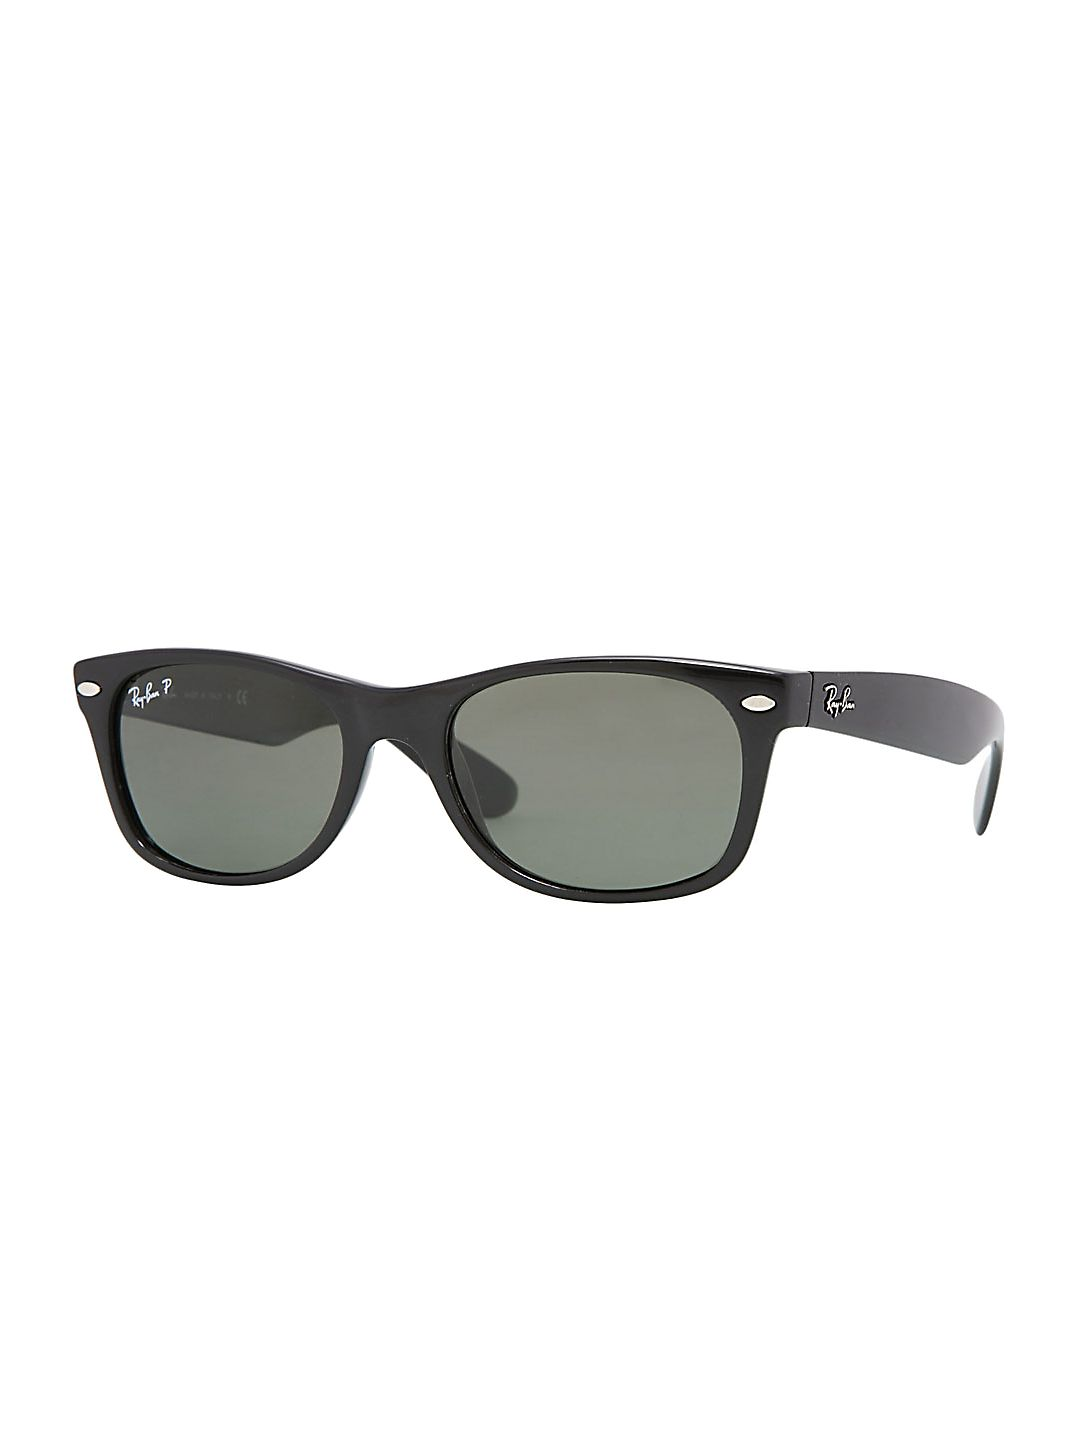 New Wayfarer Square Polar Sunglasses